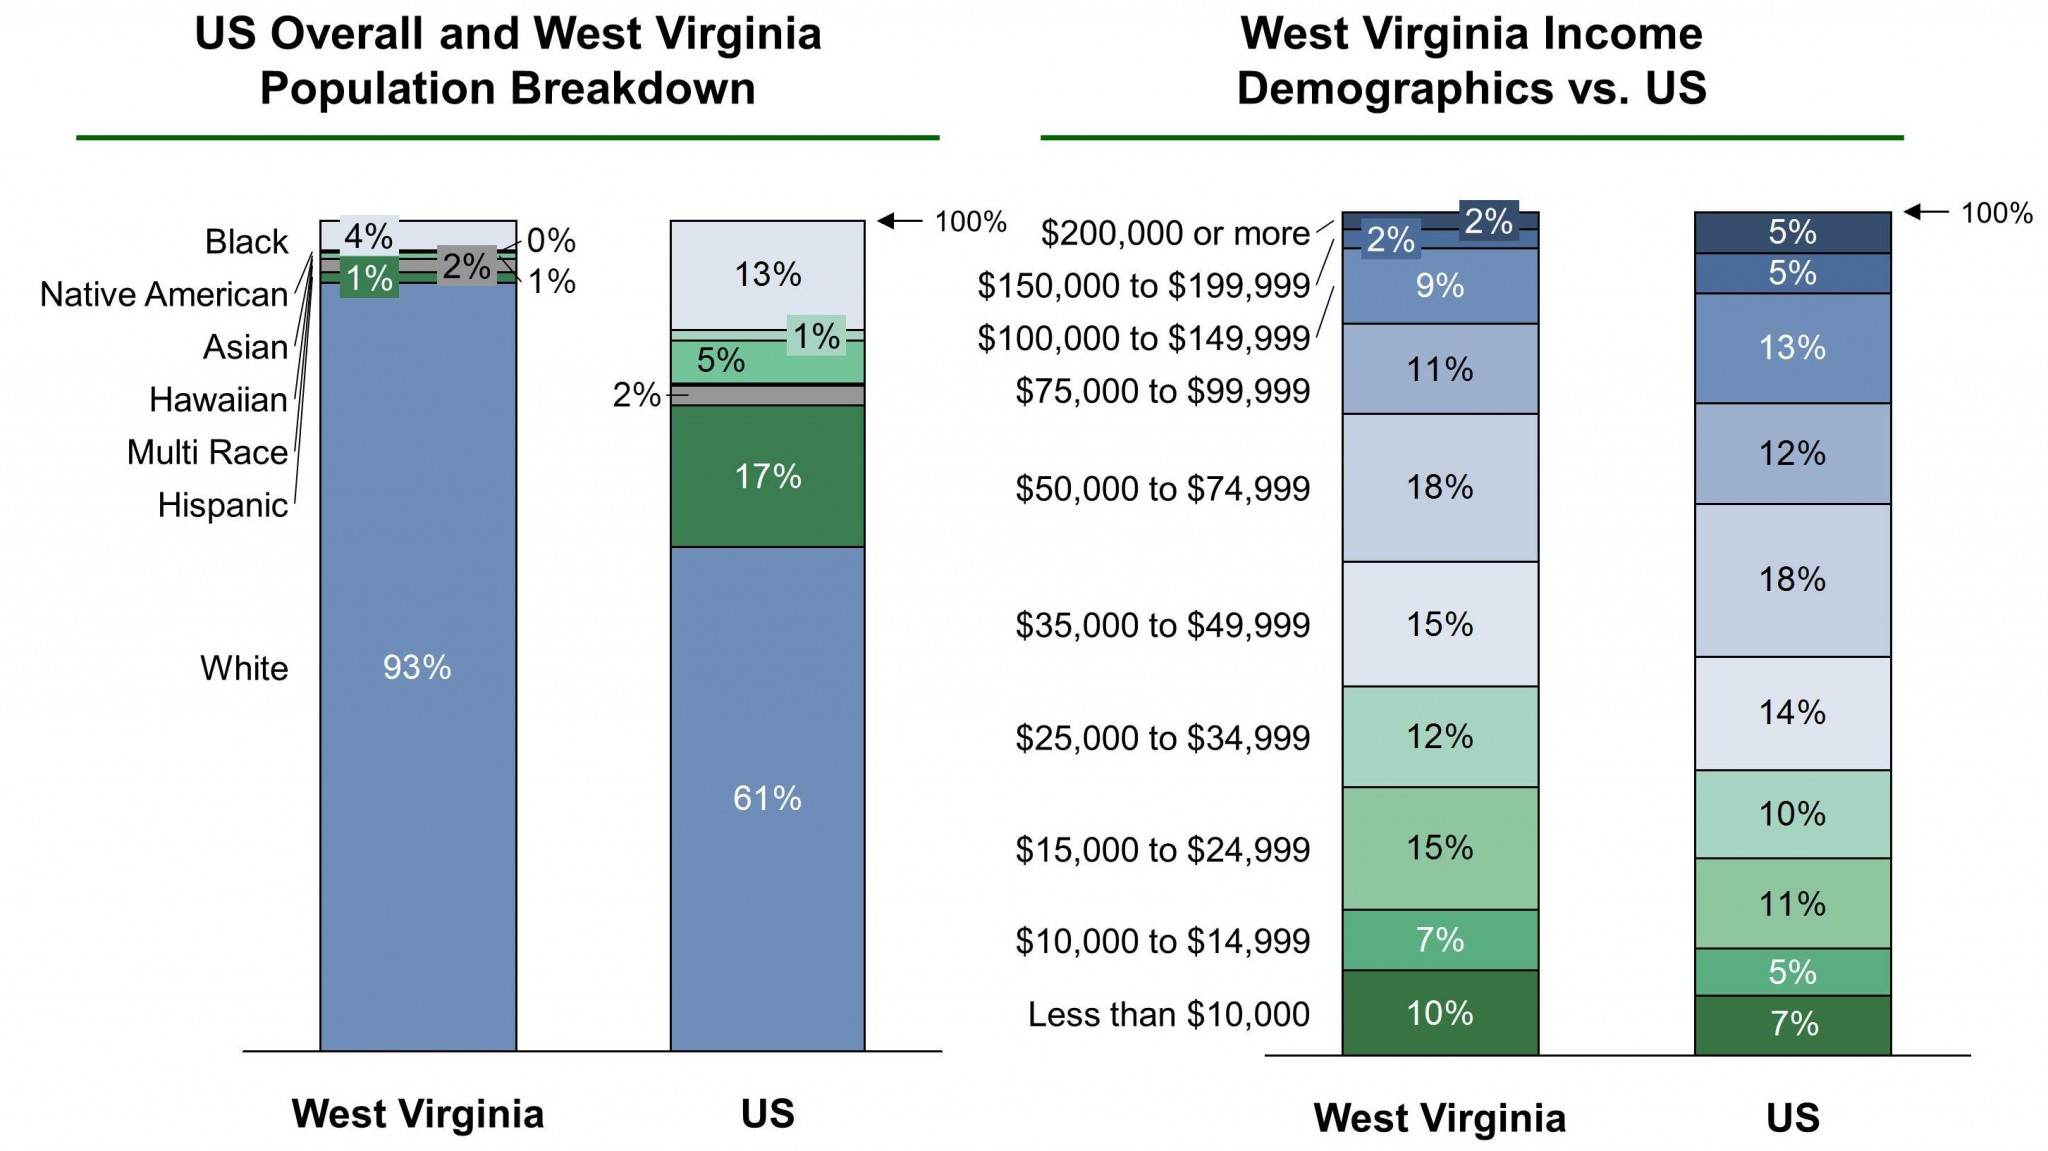 West Virginia EB-5 Regional Center Demographics VF